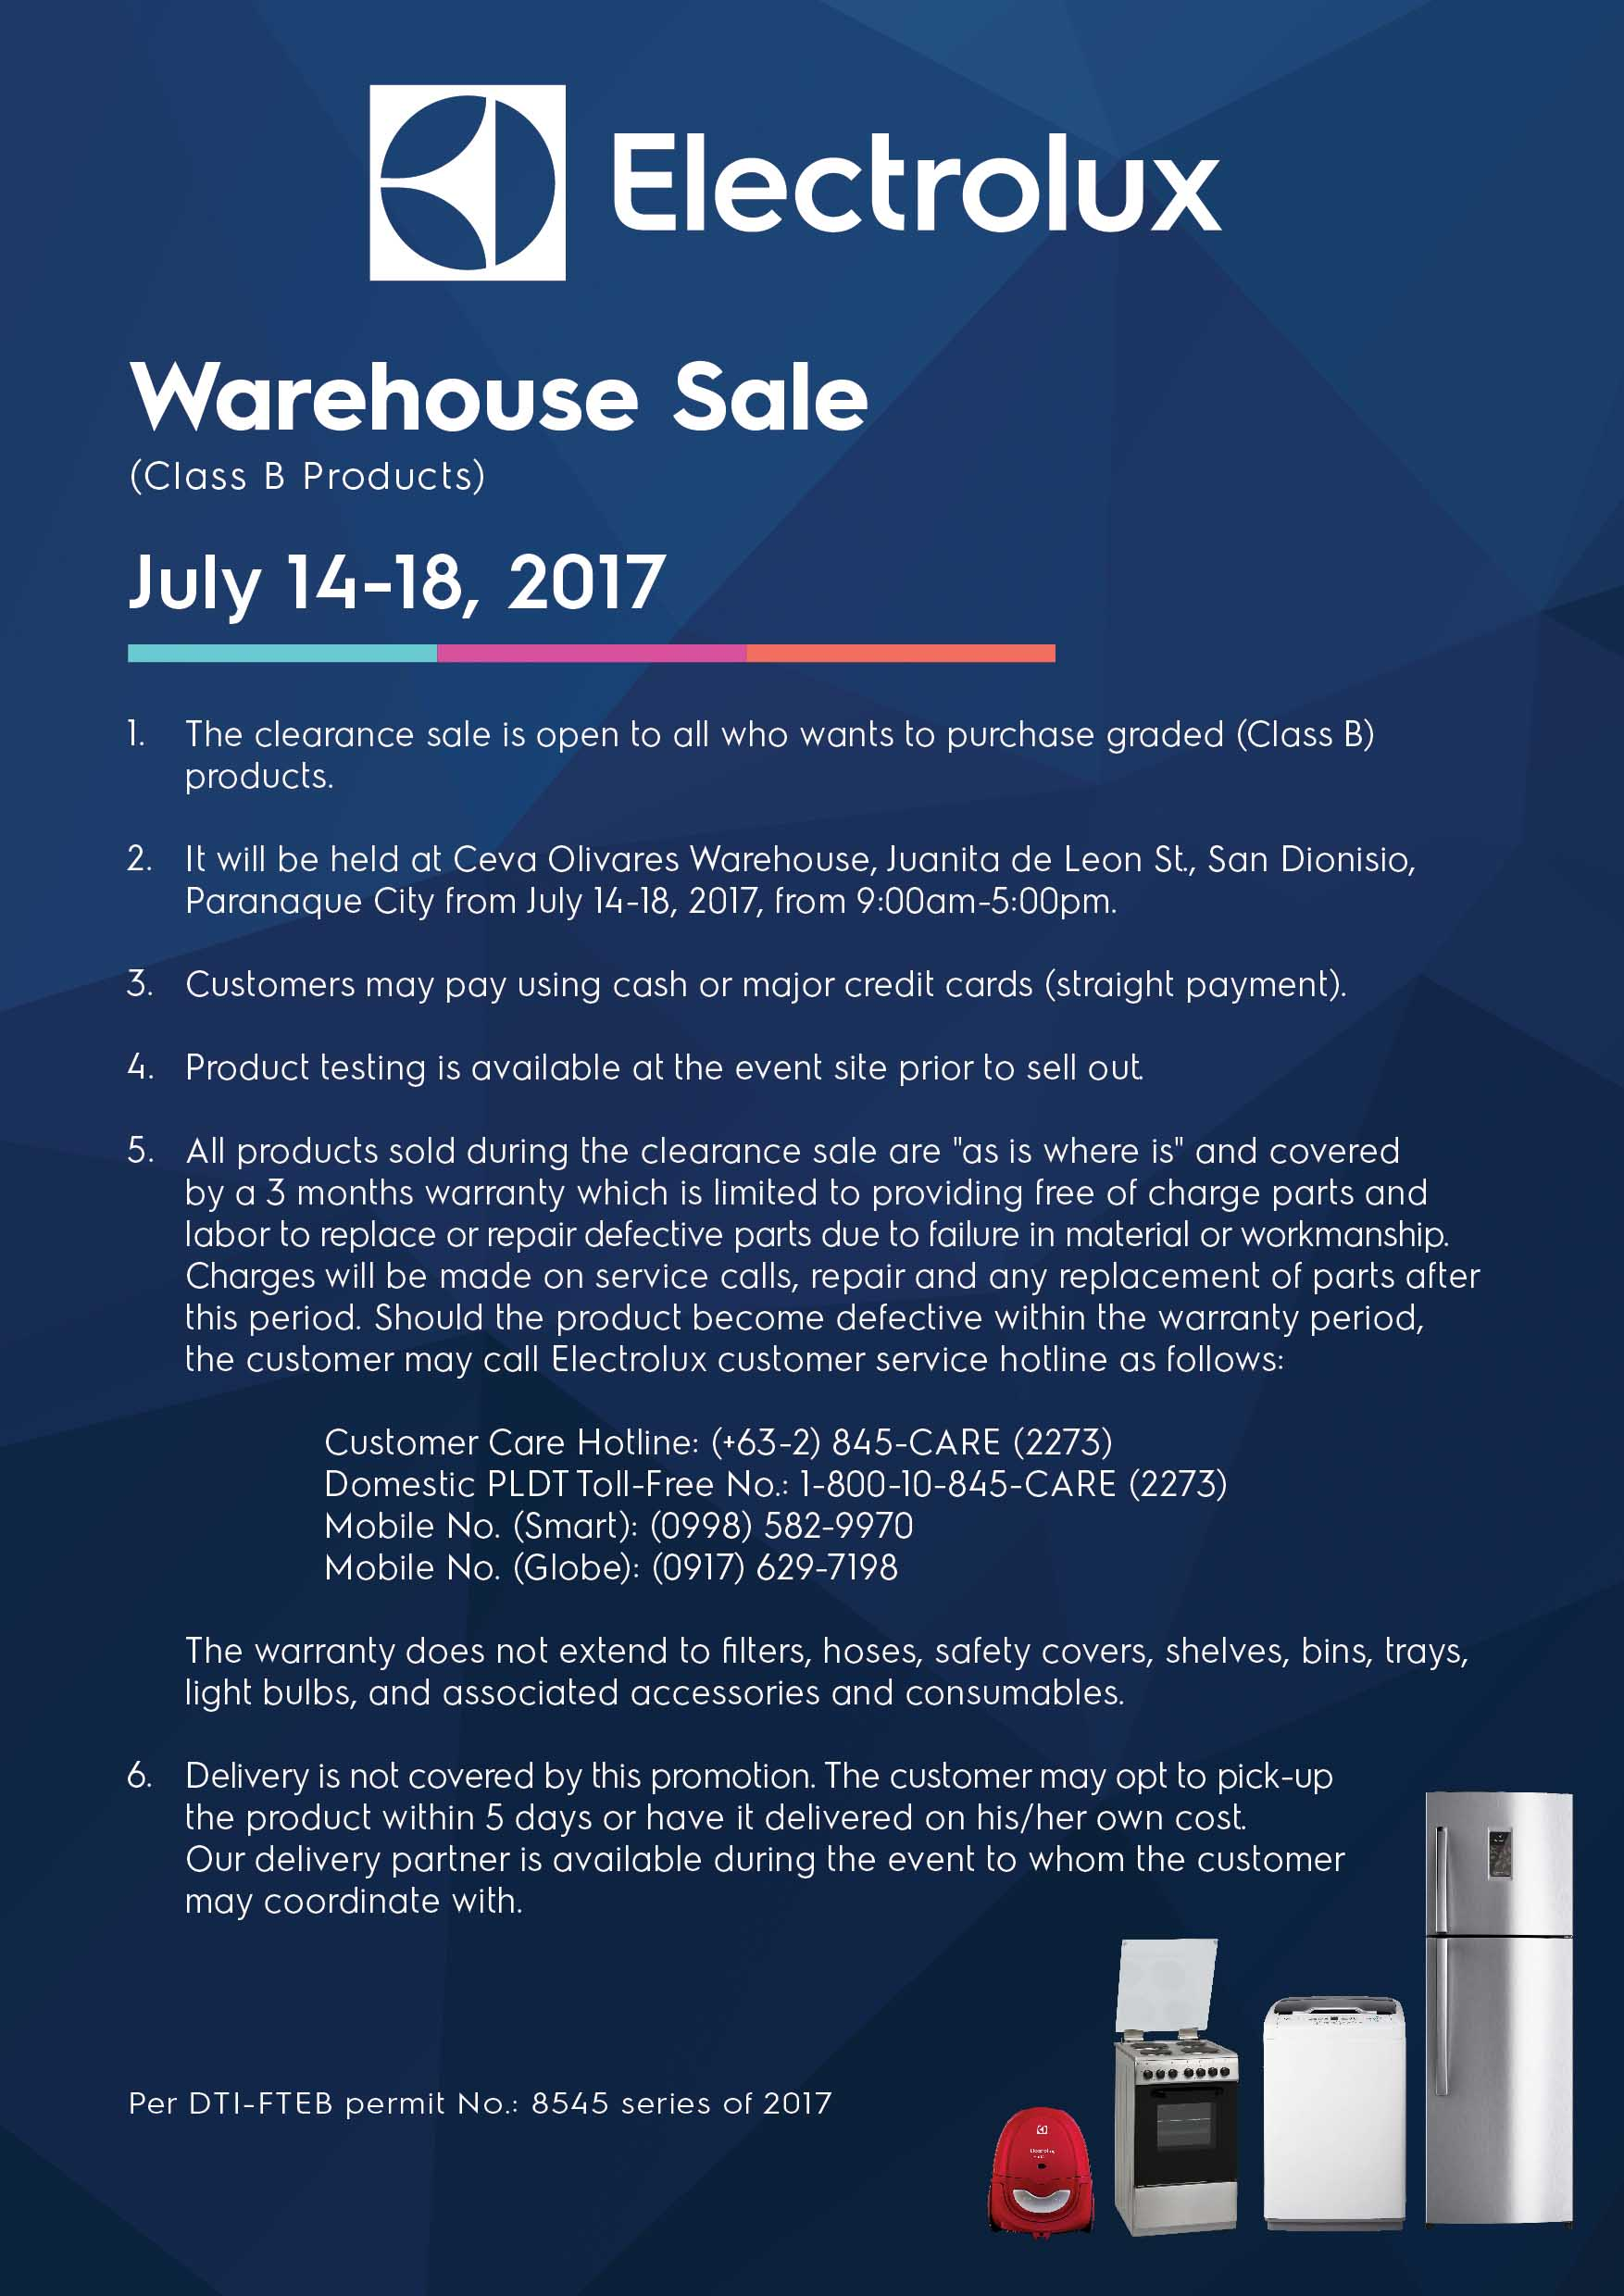 Electrolux Warehouse Sale Terms Conditions